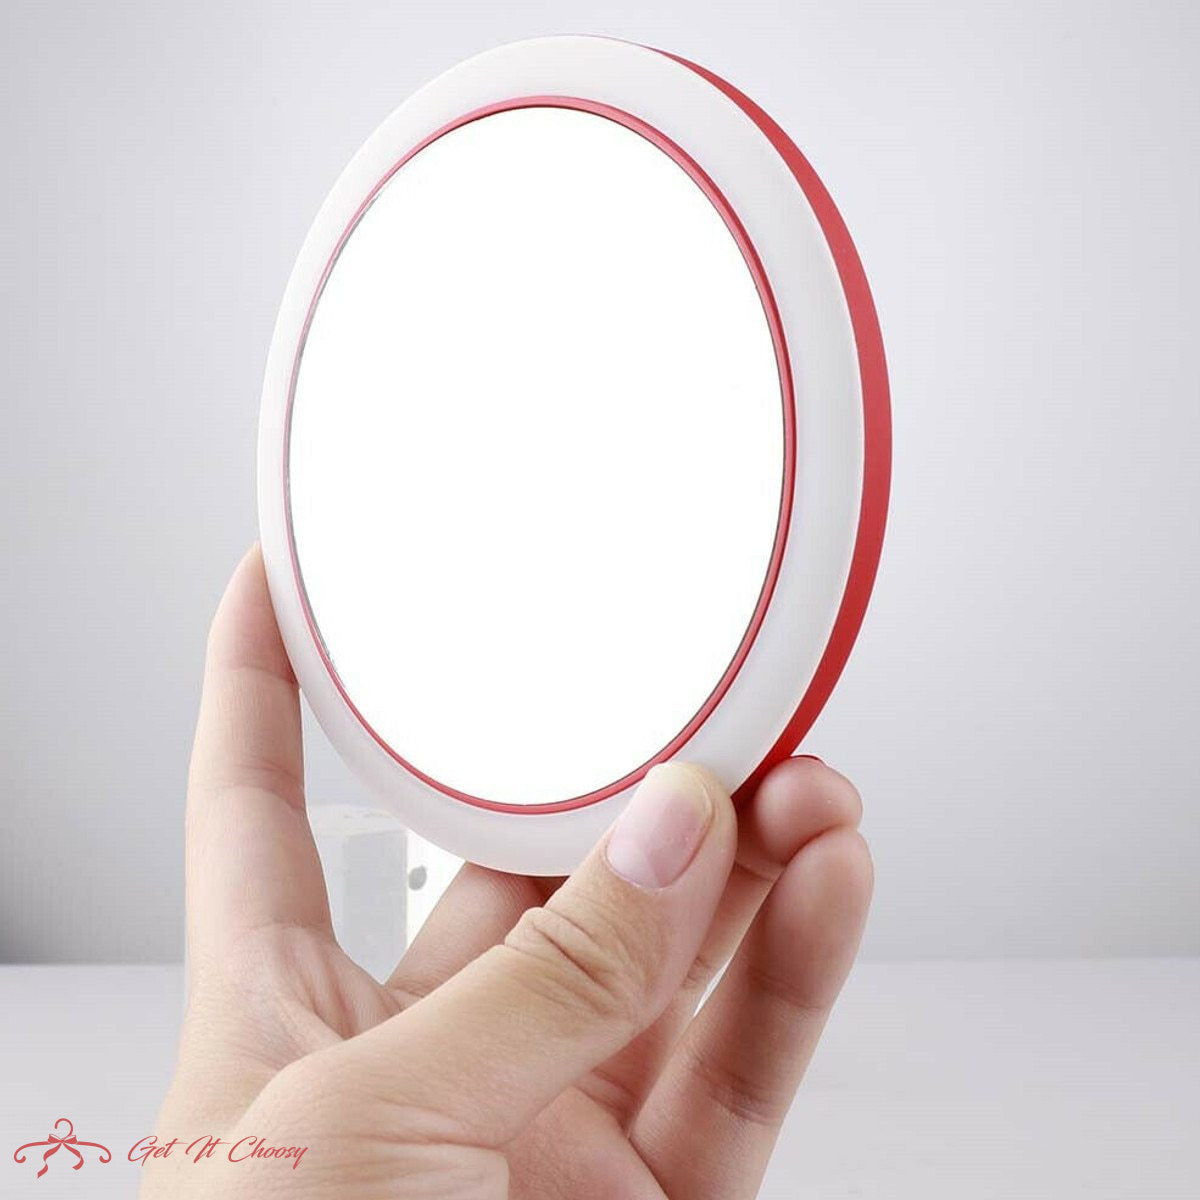 Portable LED Lighted Mini Circular Makeup Mirror Compact Travel Sensing Lighting Cosmetic Mirror Wireless USB Charging by Getitchoosy